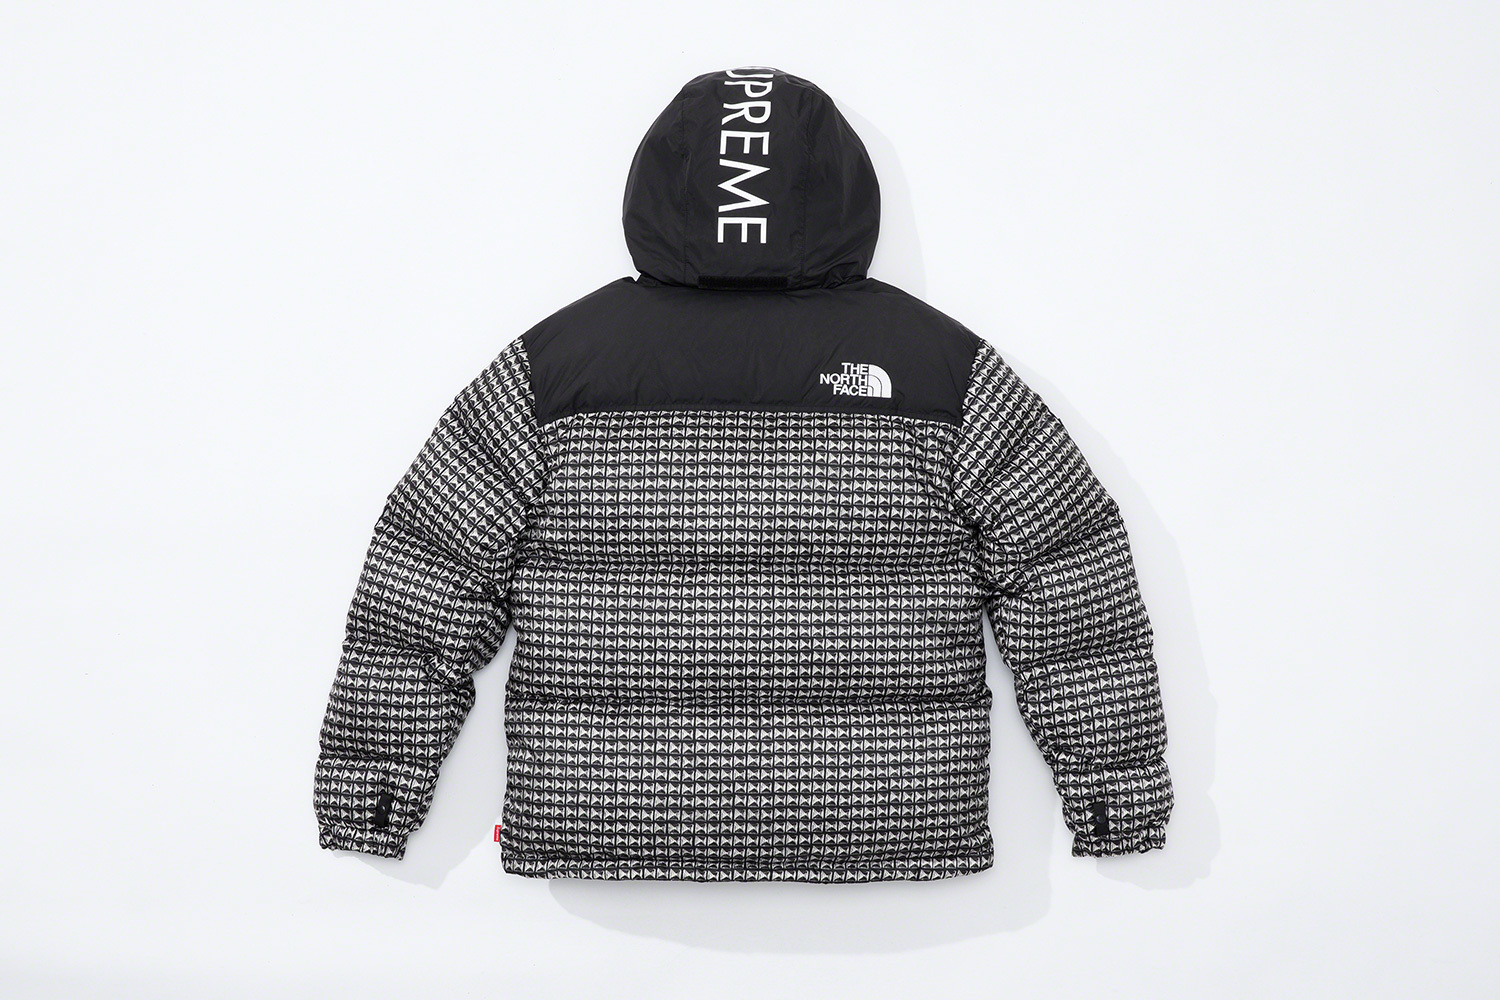 supreme-the-north-face-studded-21ss-collection-release-20210327-week5